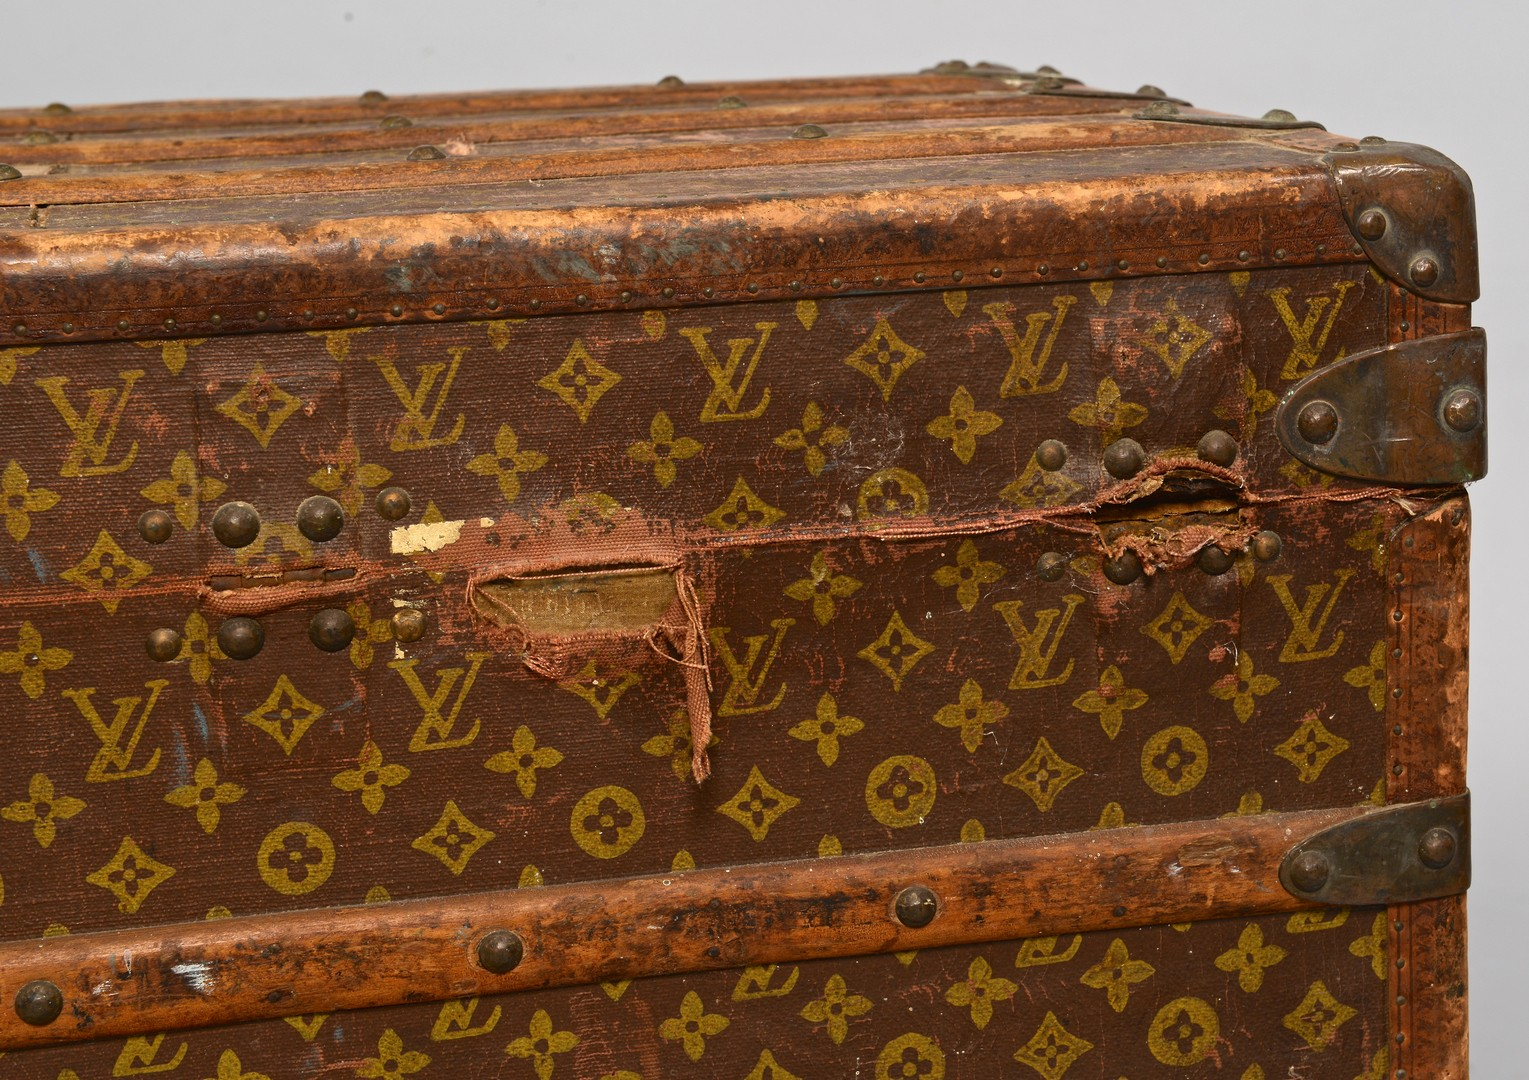 Lot 839: Early 20th c. Louis Vuitton Steamer Trunk